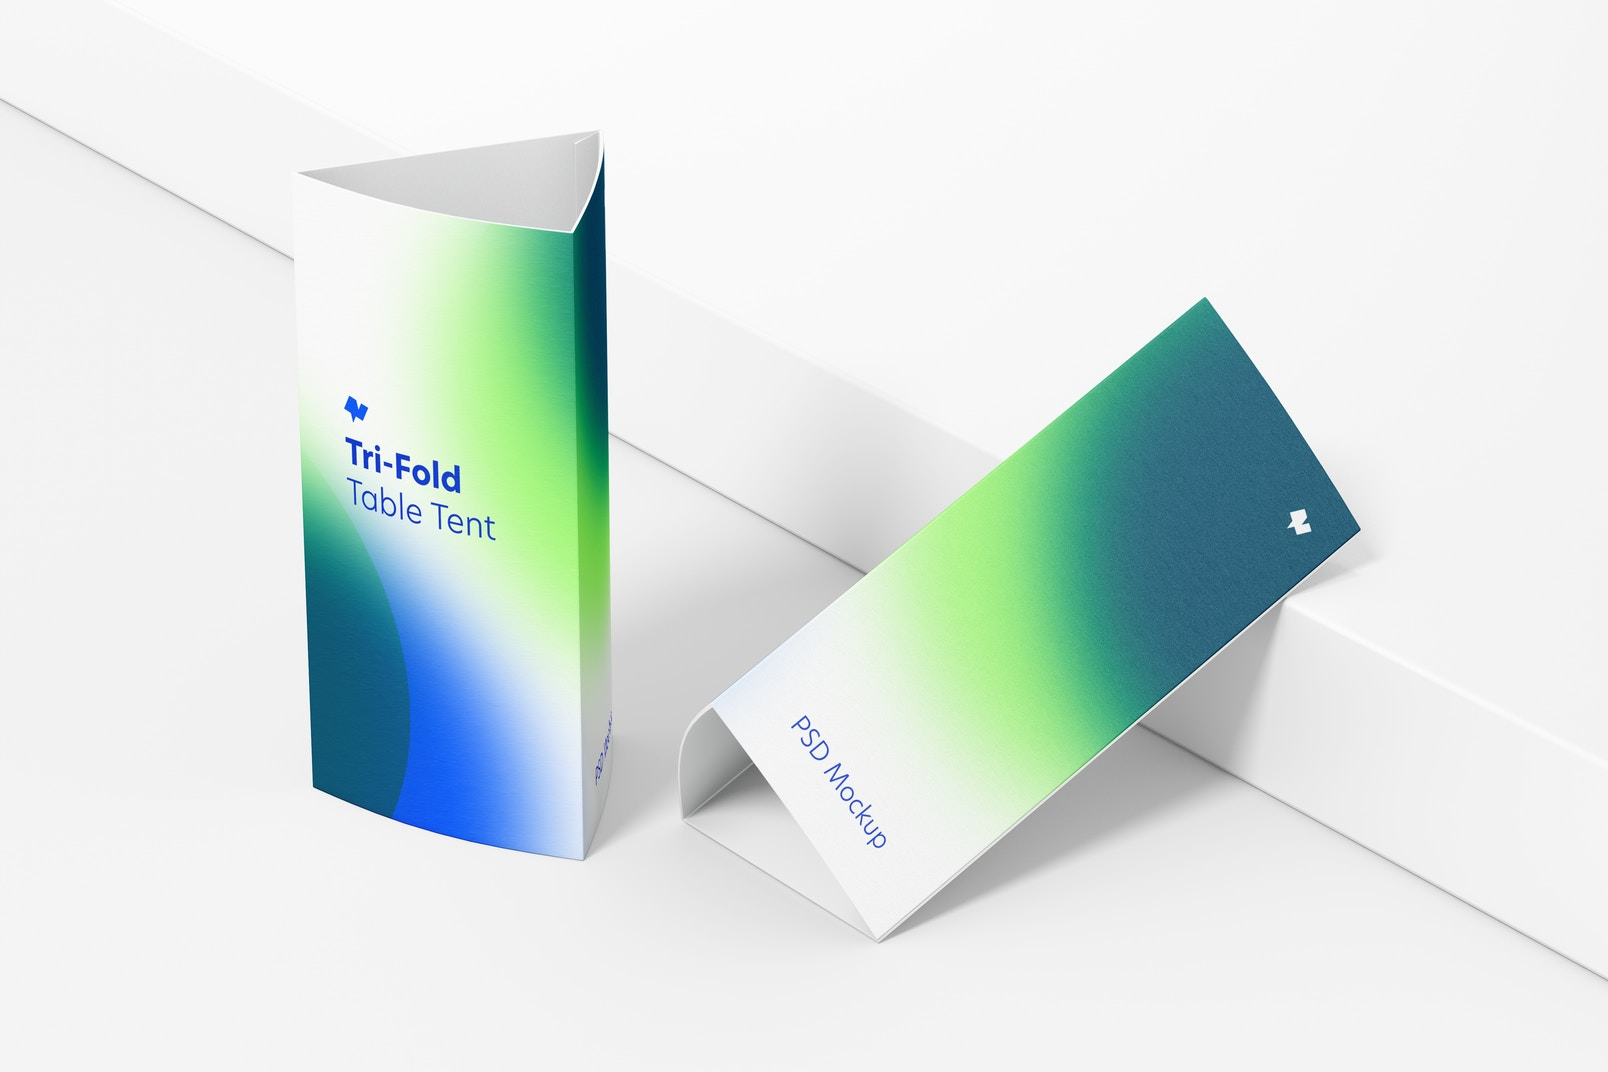 Tri-Fold Table Tents Mockup, Perspective